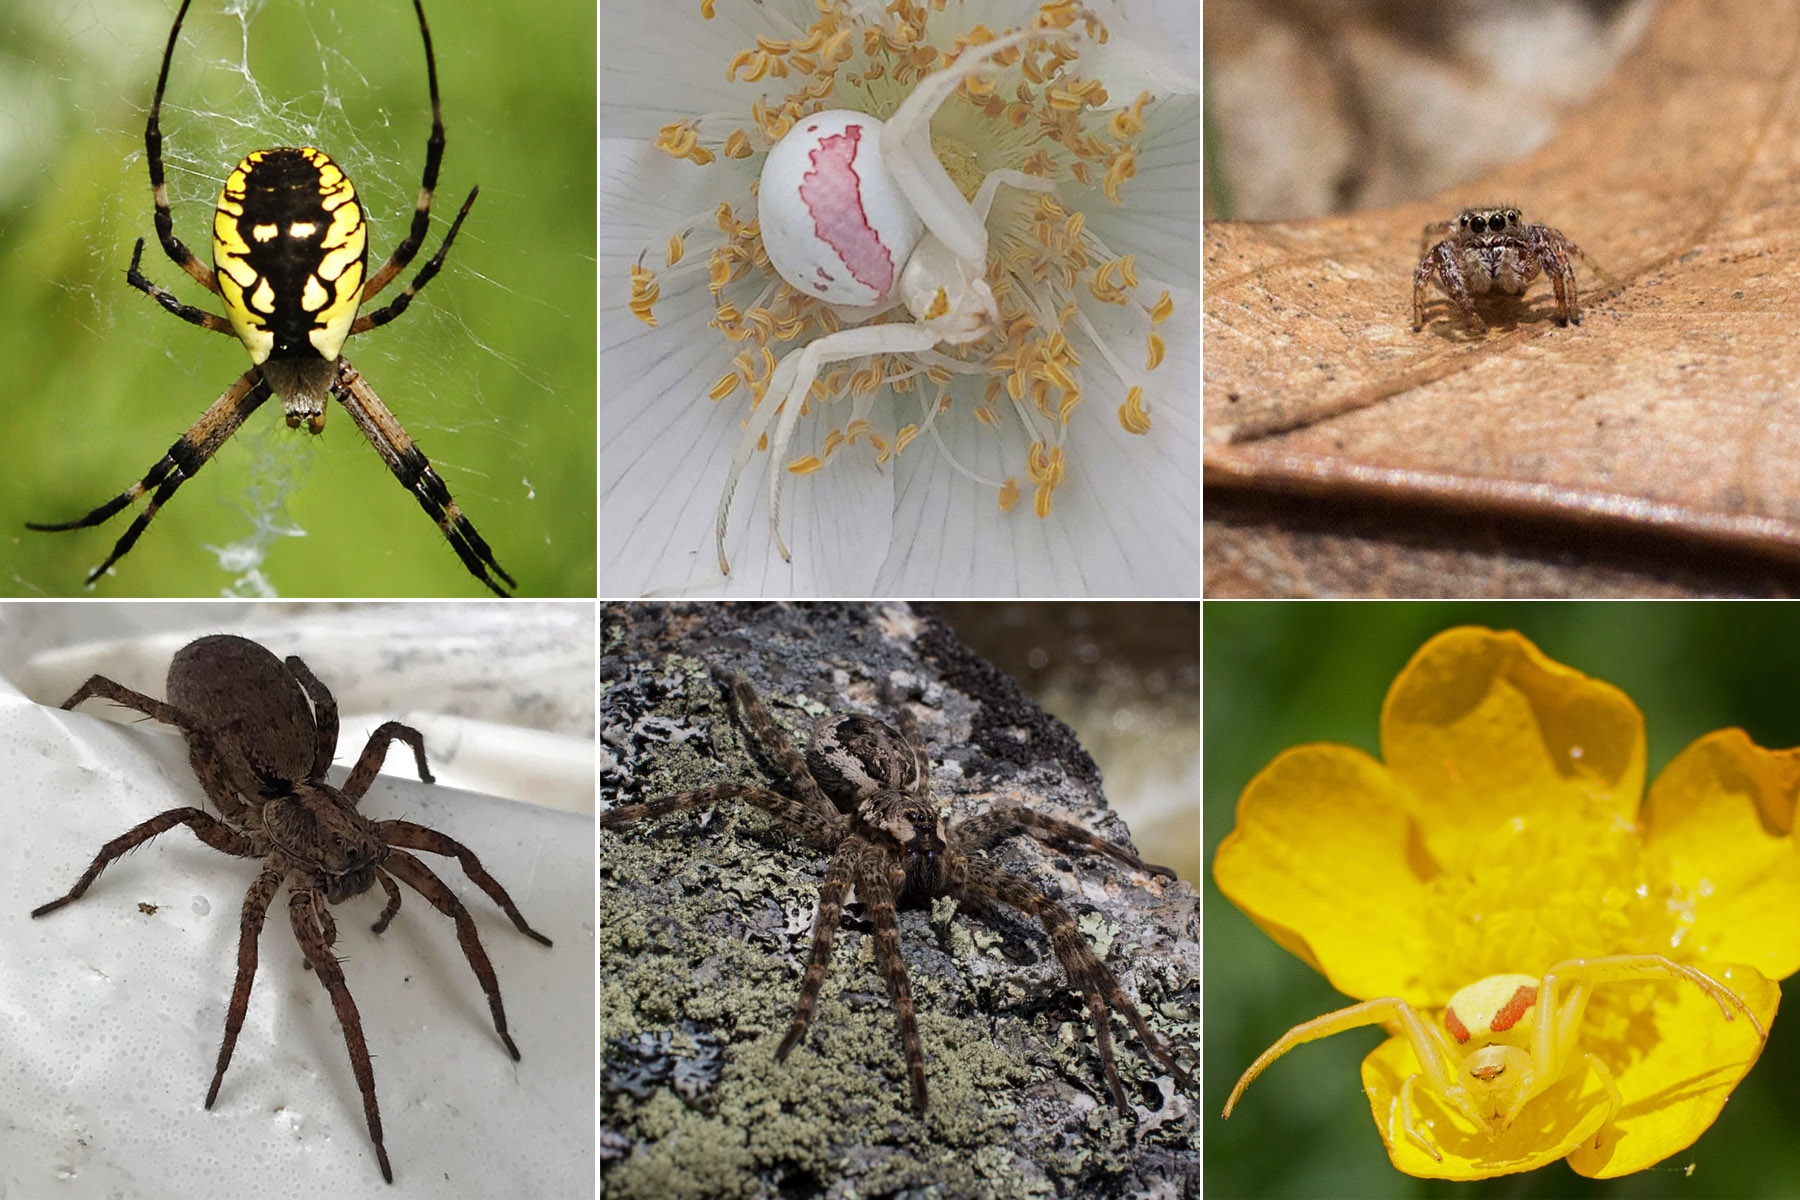 Maine Is Home To Hundreds Of Spider Species Here S A Guide To The Ones You Might Find